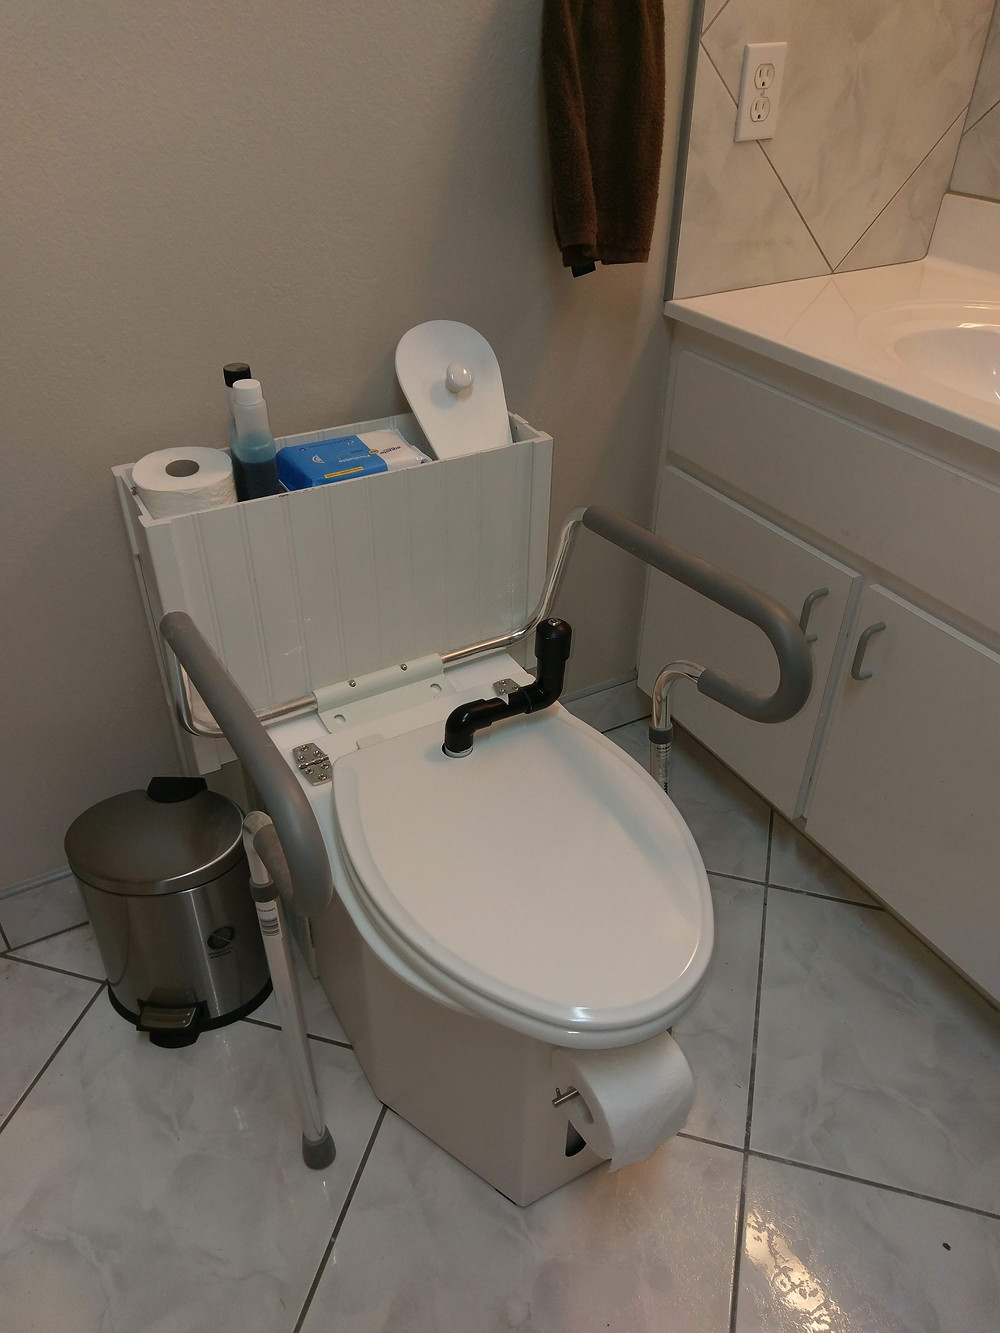 Docking cabinet for ADA dimensional standard ready c-head composting toilet